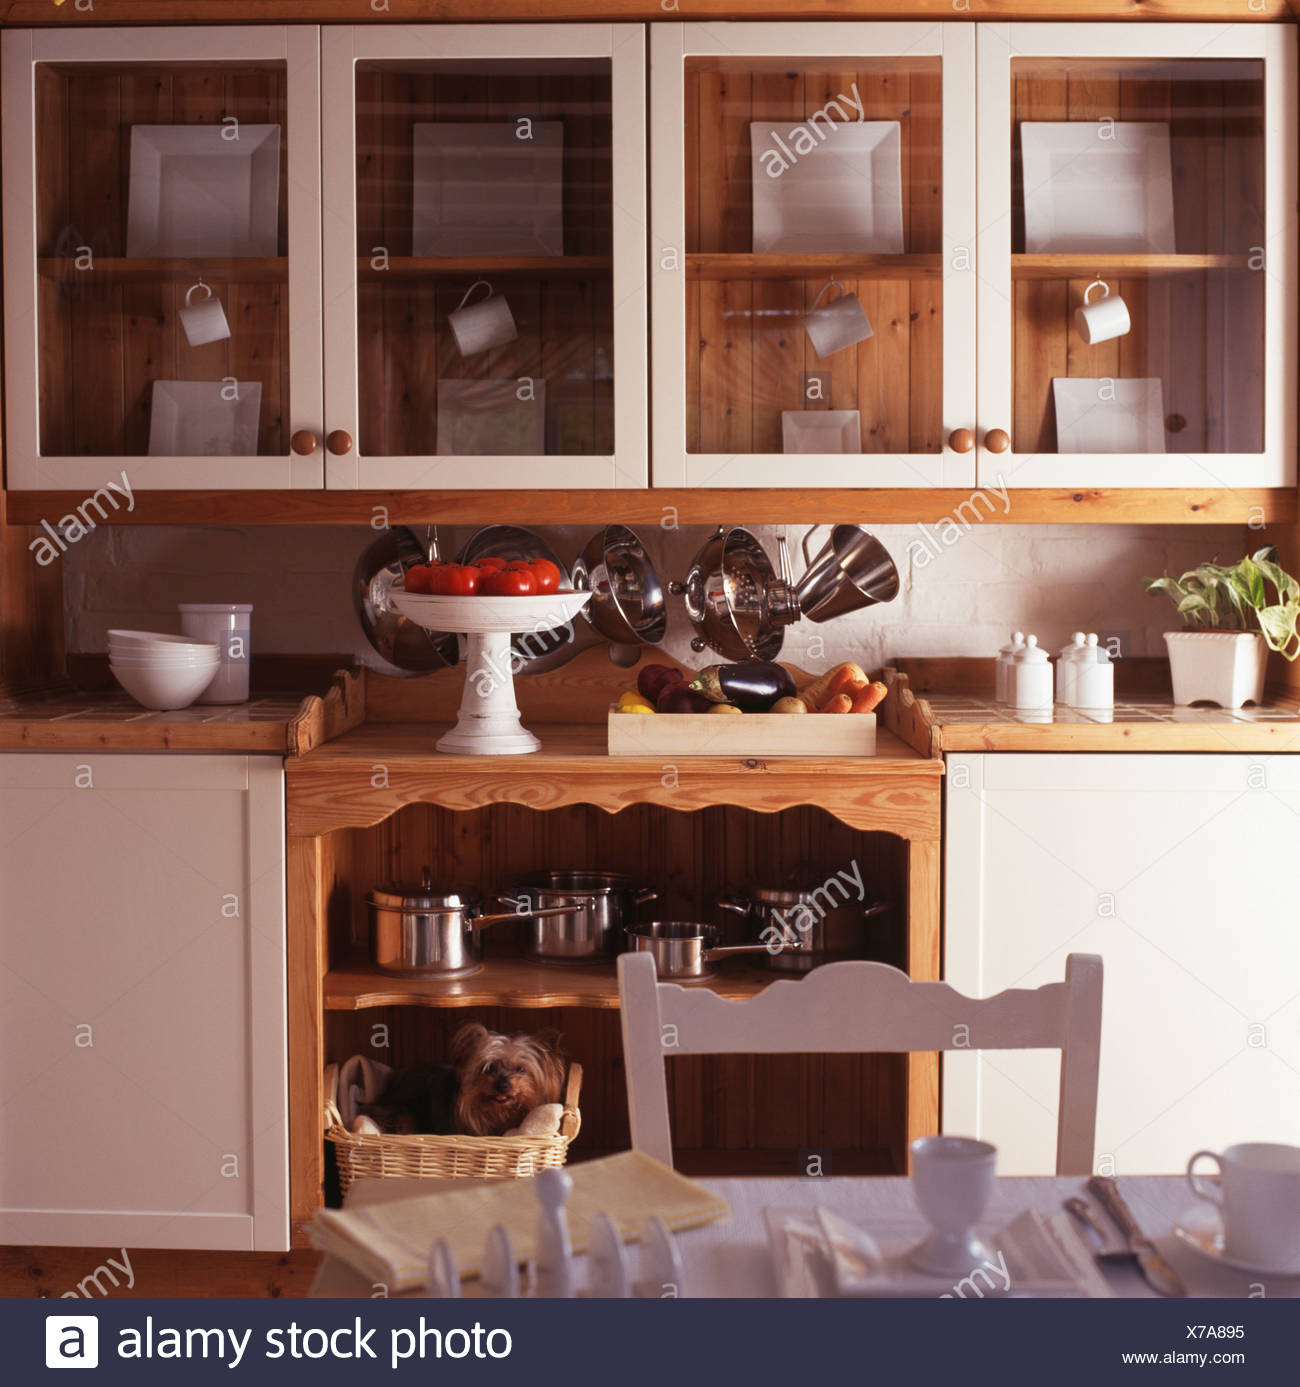 Fitted Cupboards With Glazed Doors Above Cream Cupboards And Wooden Shelves In Cream Cottage Kitchen Stock Photo Alamy